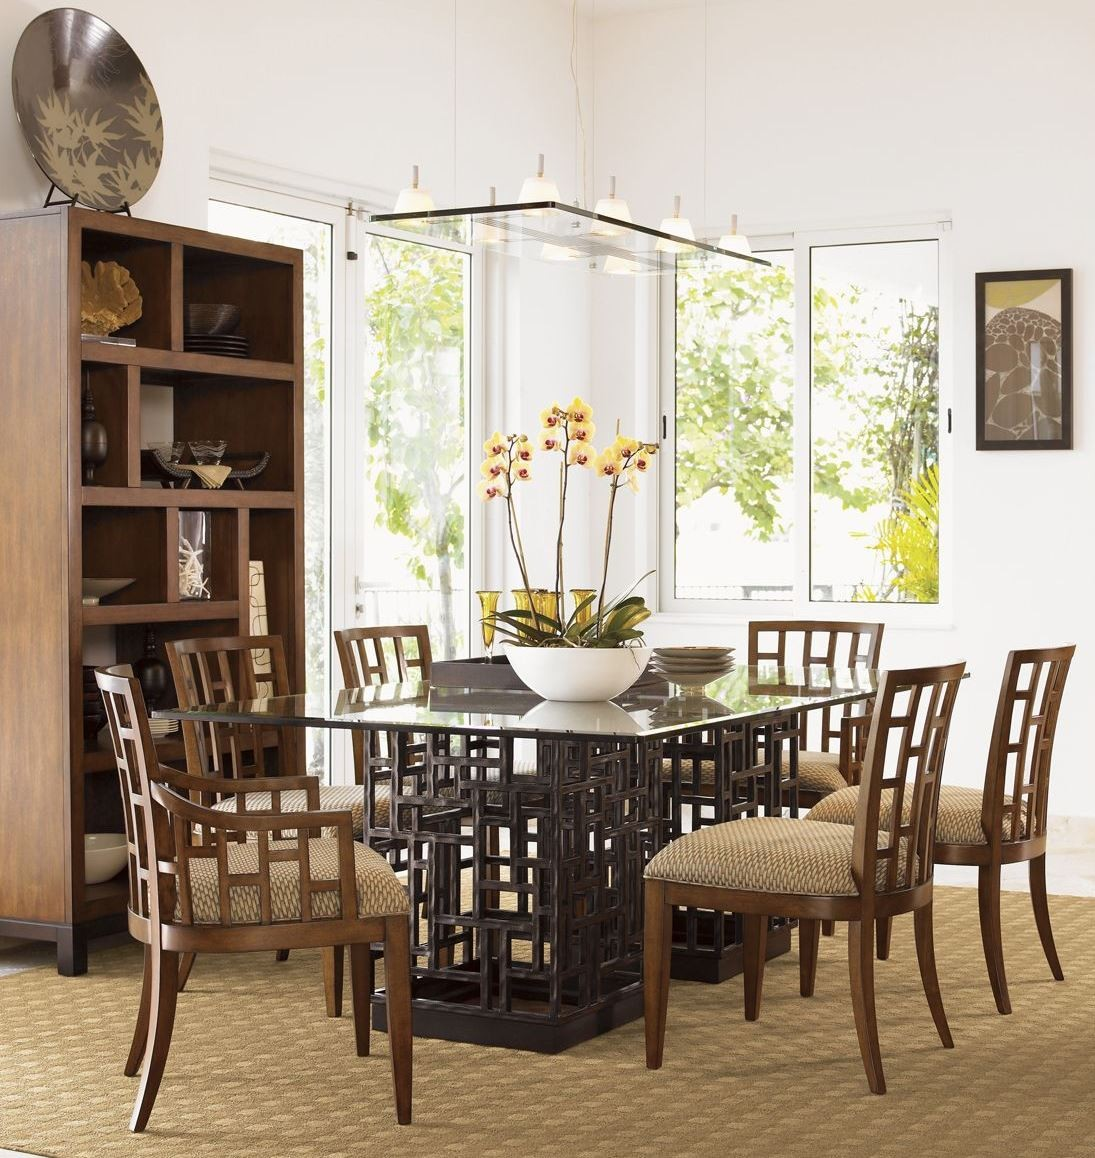 Glass Dining Room: Ocean Club South Seas Rectangular Glass Dining Room Set